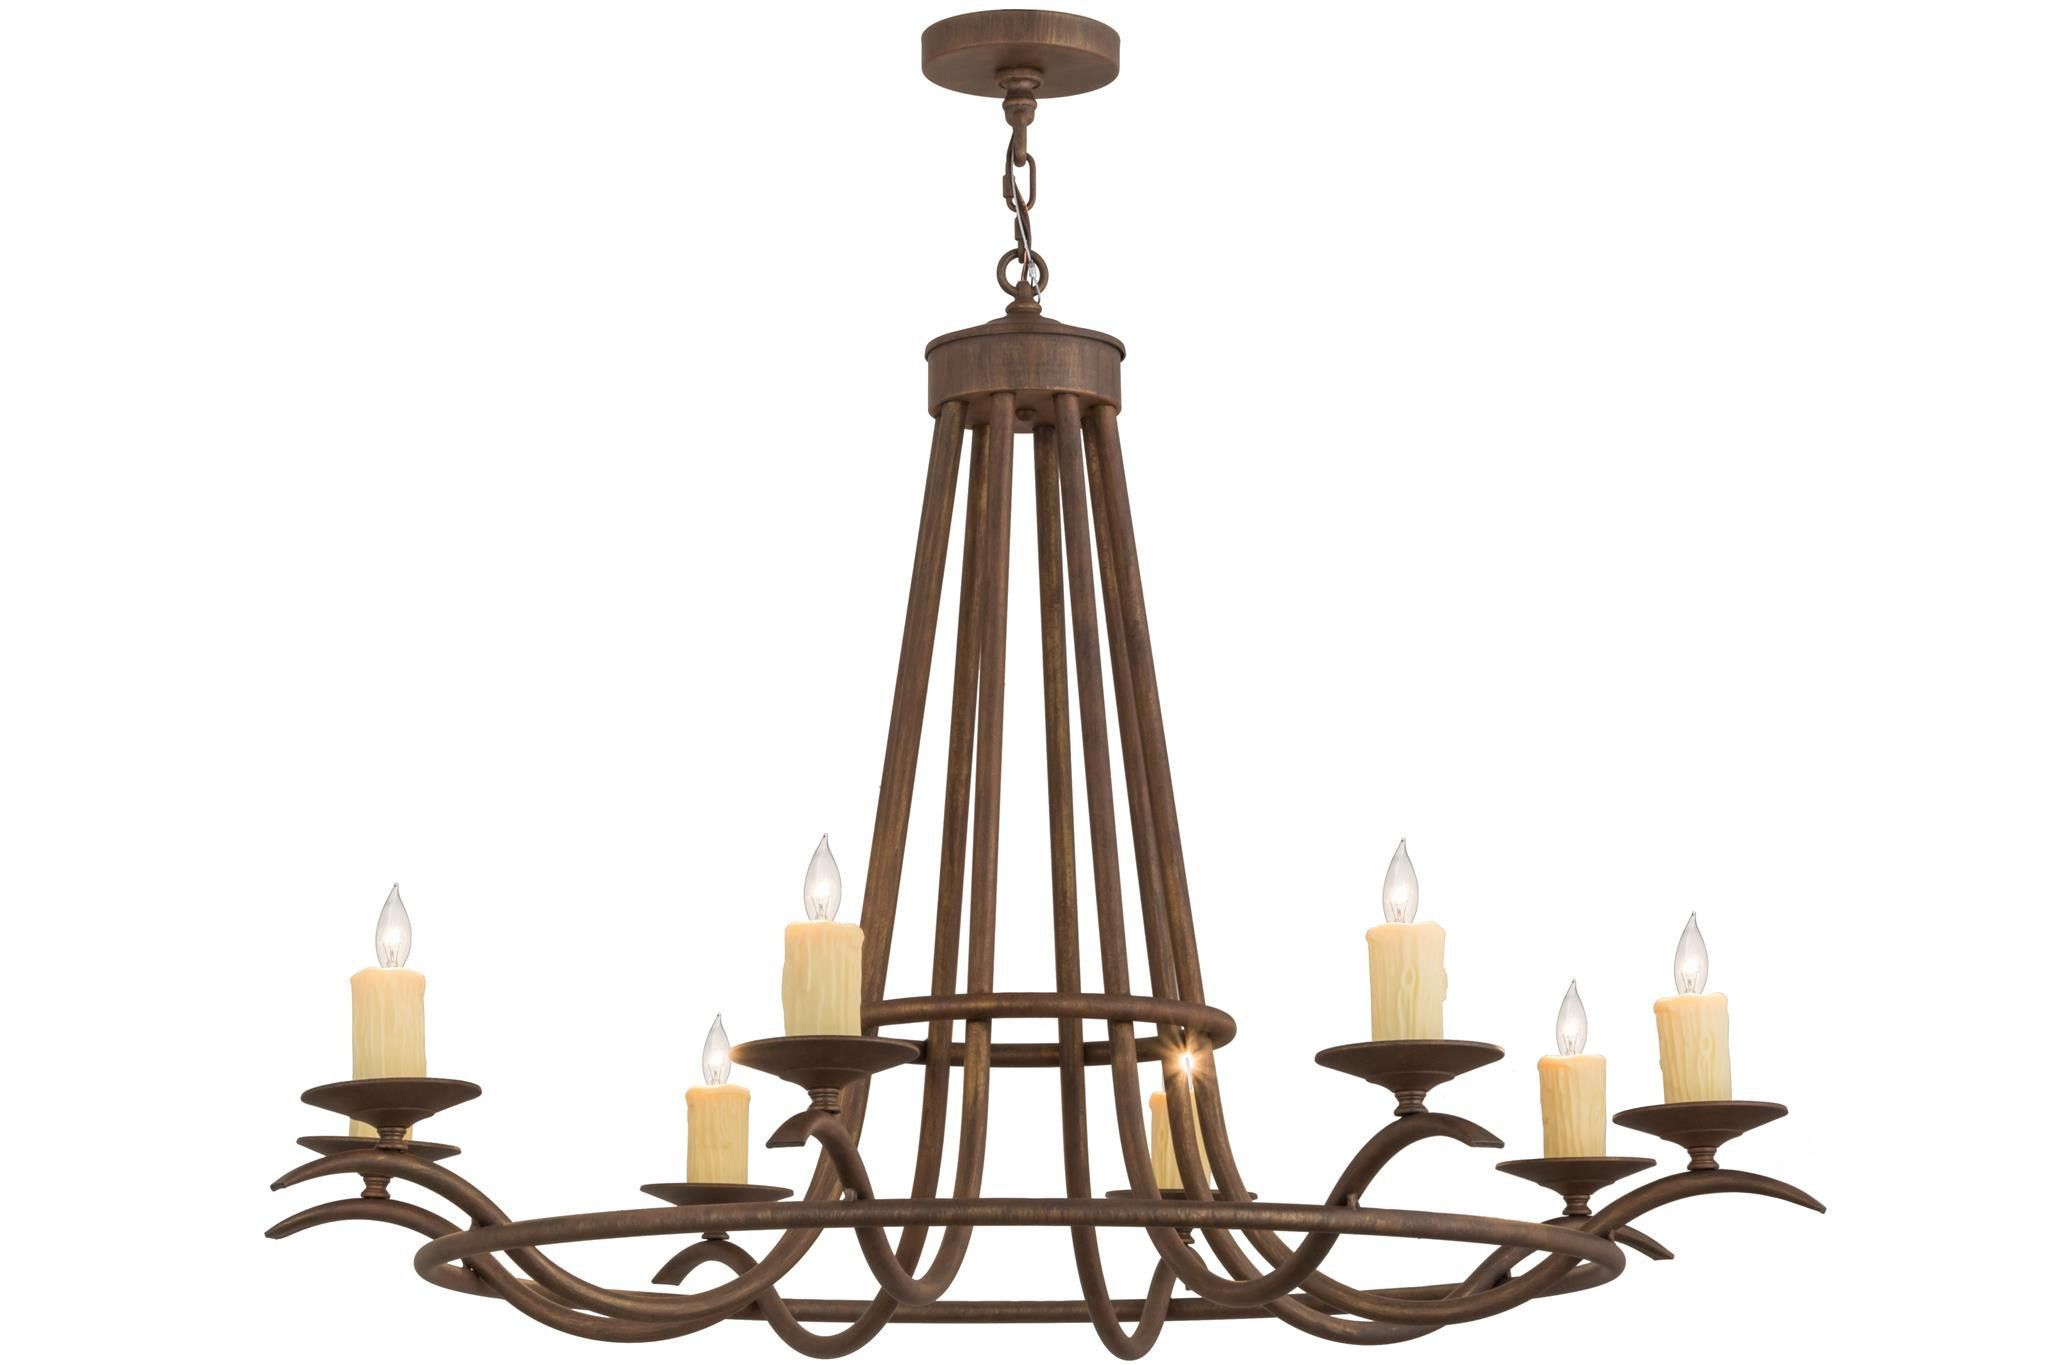 48 Inch W Octavia 8 Lt Chandelier. 48 Inch W Octavia 8 Lt ChandelierAdd graceful detail to any interior d?cor with thiswell balanced lighting design that provides softambient illumination. Eight Ivory faux candlelights areperched on bobeches that are embraced by an elegantframe with a richly hued Cortez Gold finish. custom crafted in our manufacturing facility in the USA, this chandelier is perfect for creating a welcomingenvironment in any space. Choose a custom color...